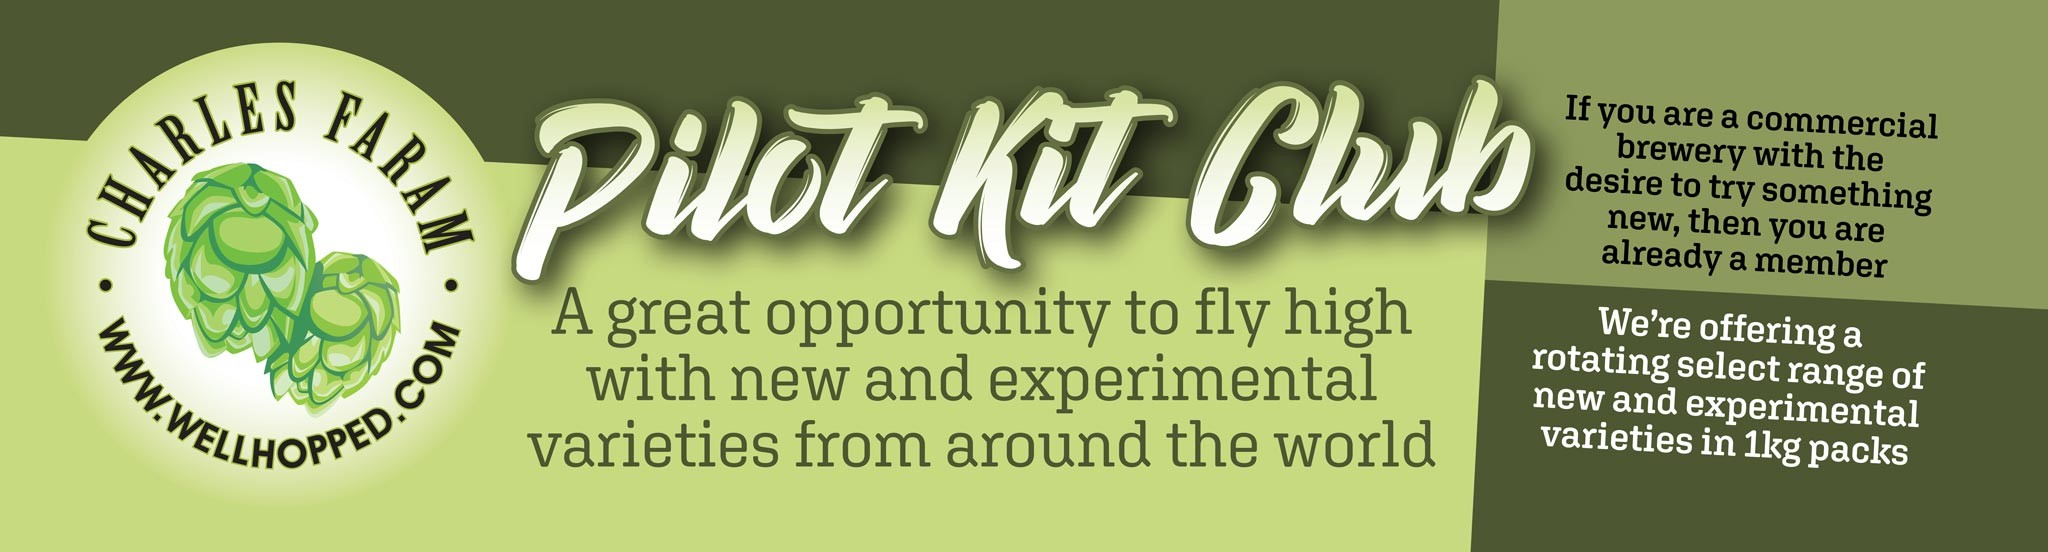 Pilot kit club - A great opportunity to fly high with new and experimental varieties from around the world